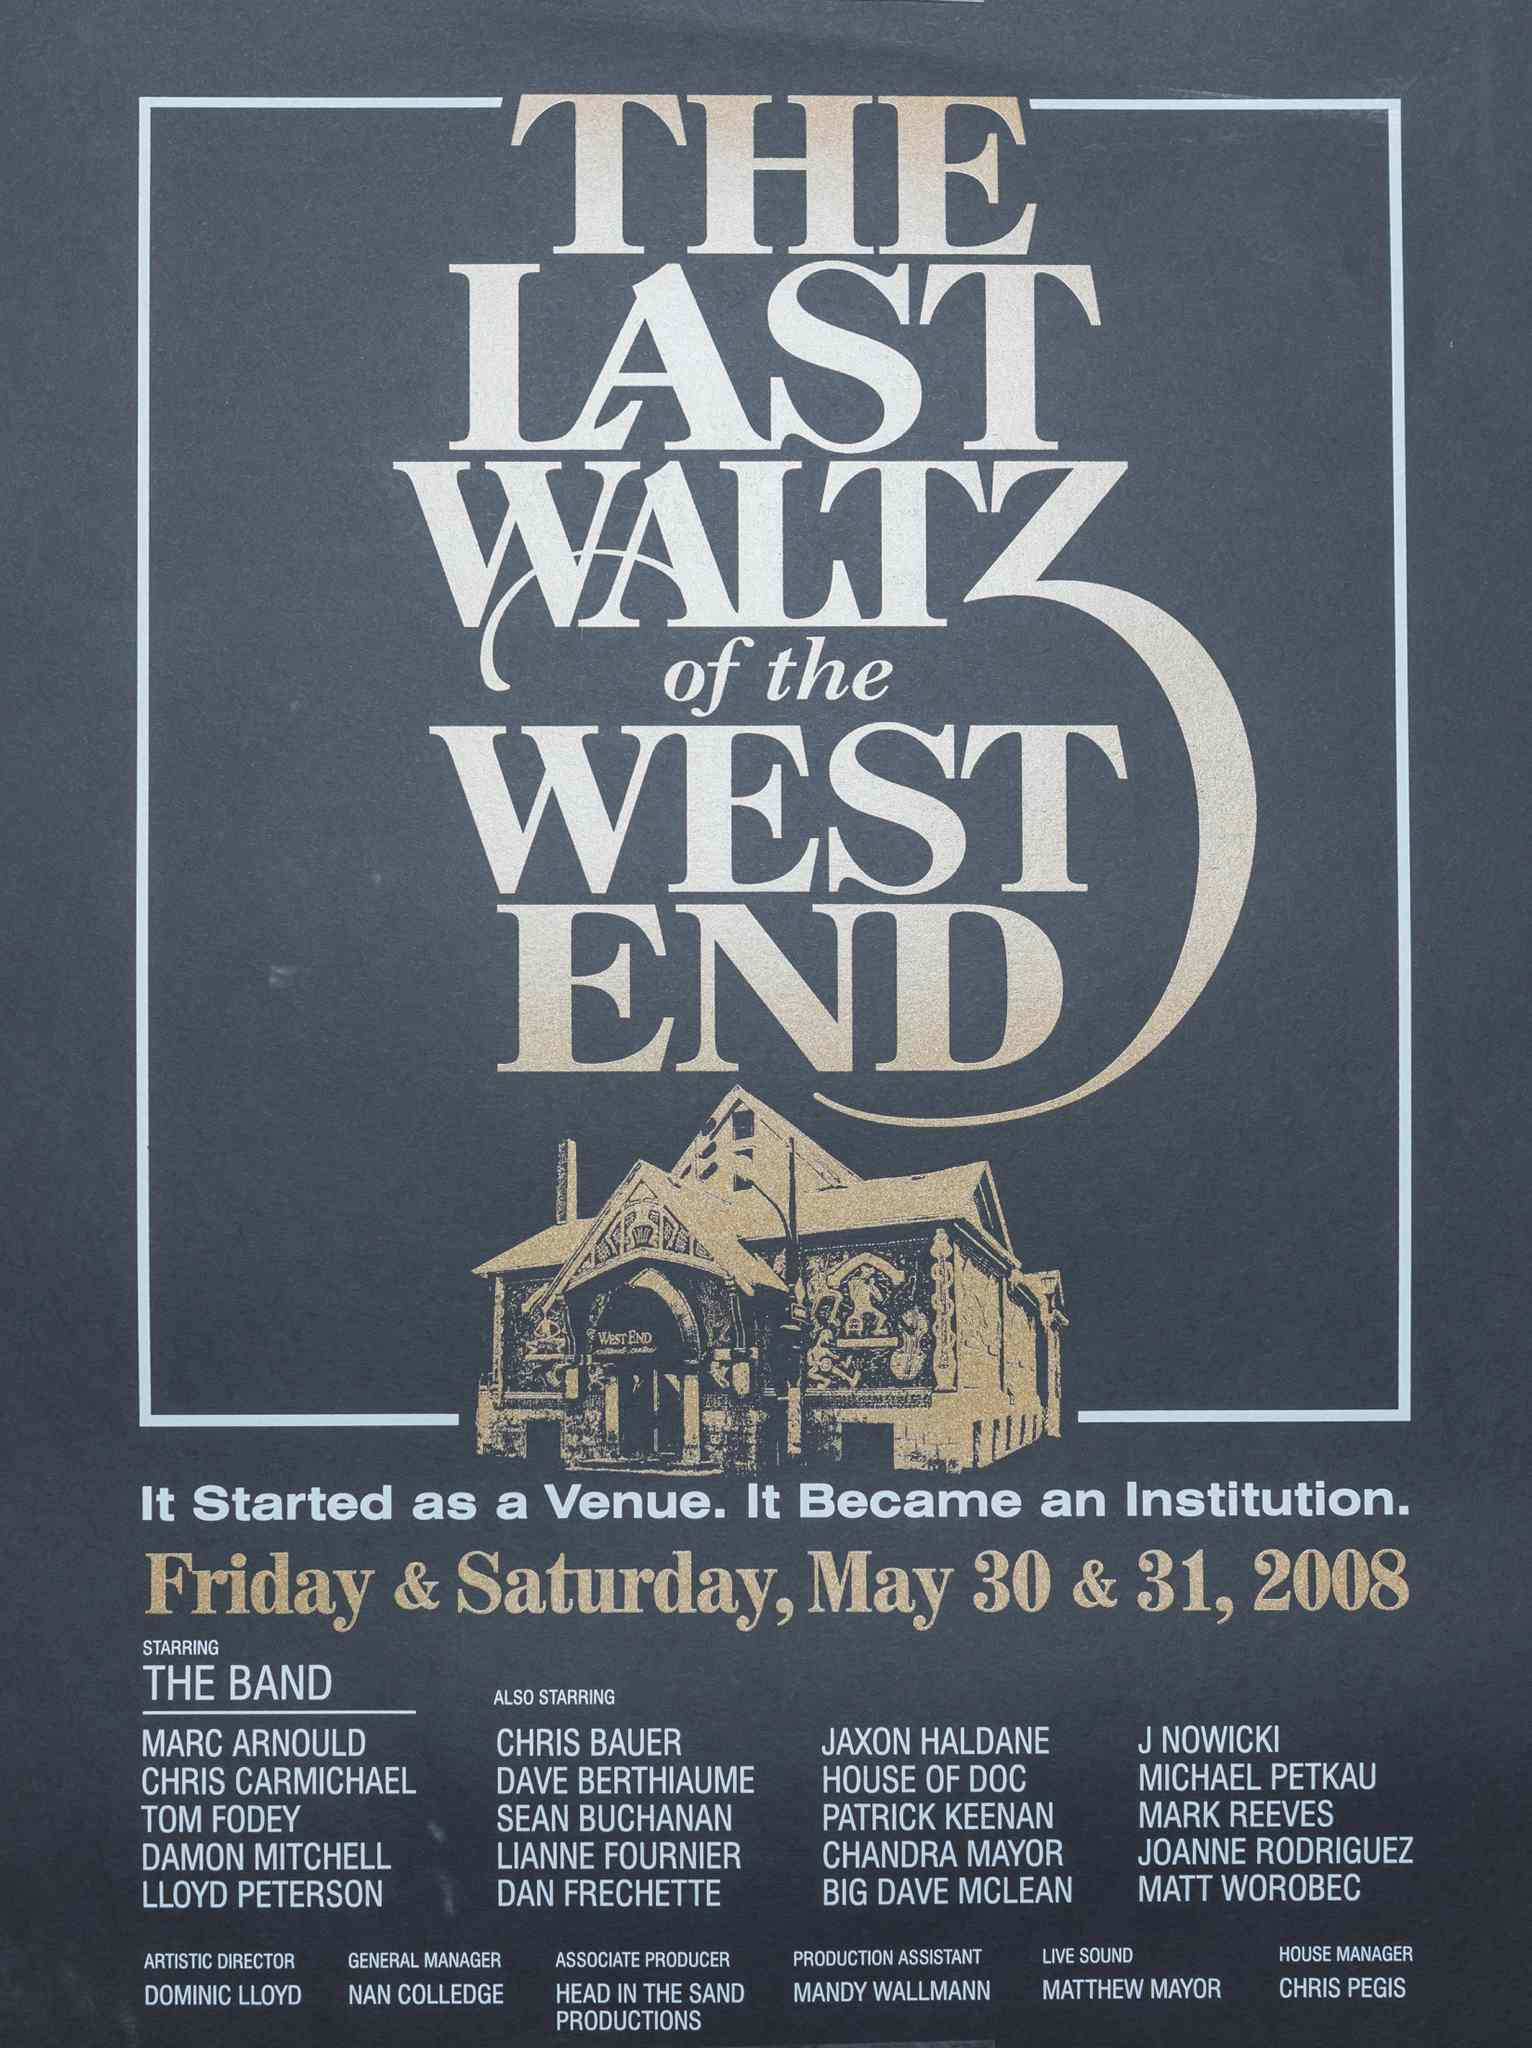 The poster for The Last Waltz, the final show at the WECC before it closed for renovations in May 2008.